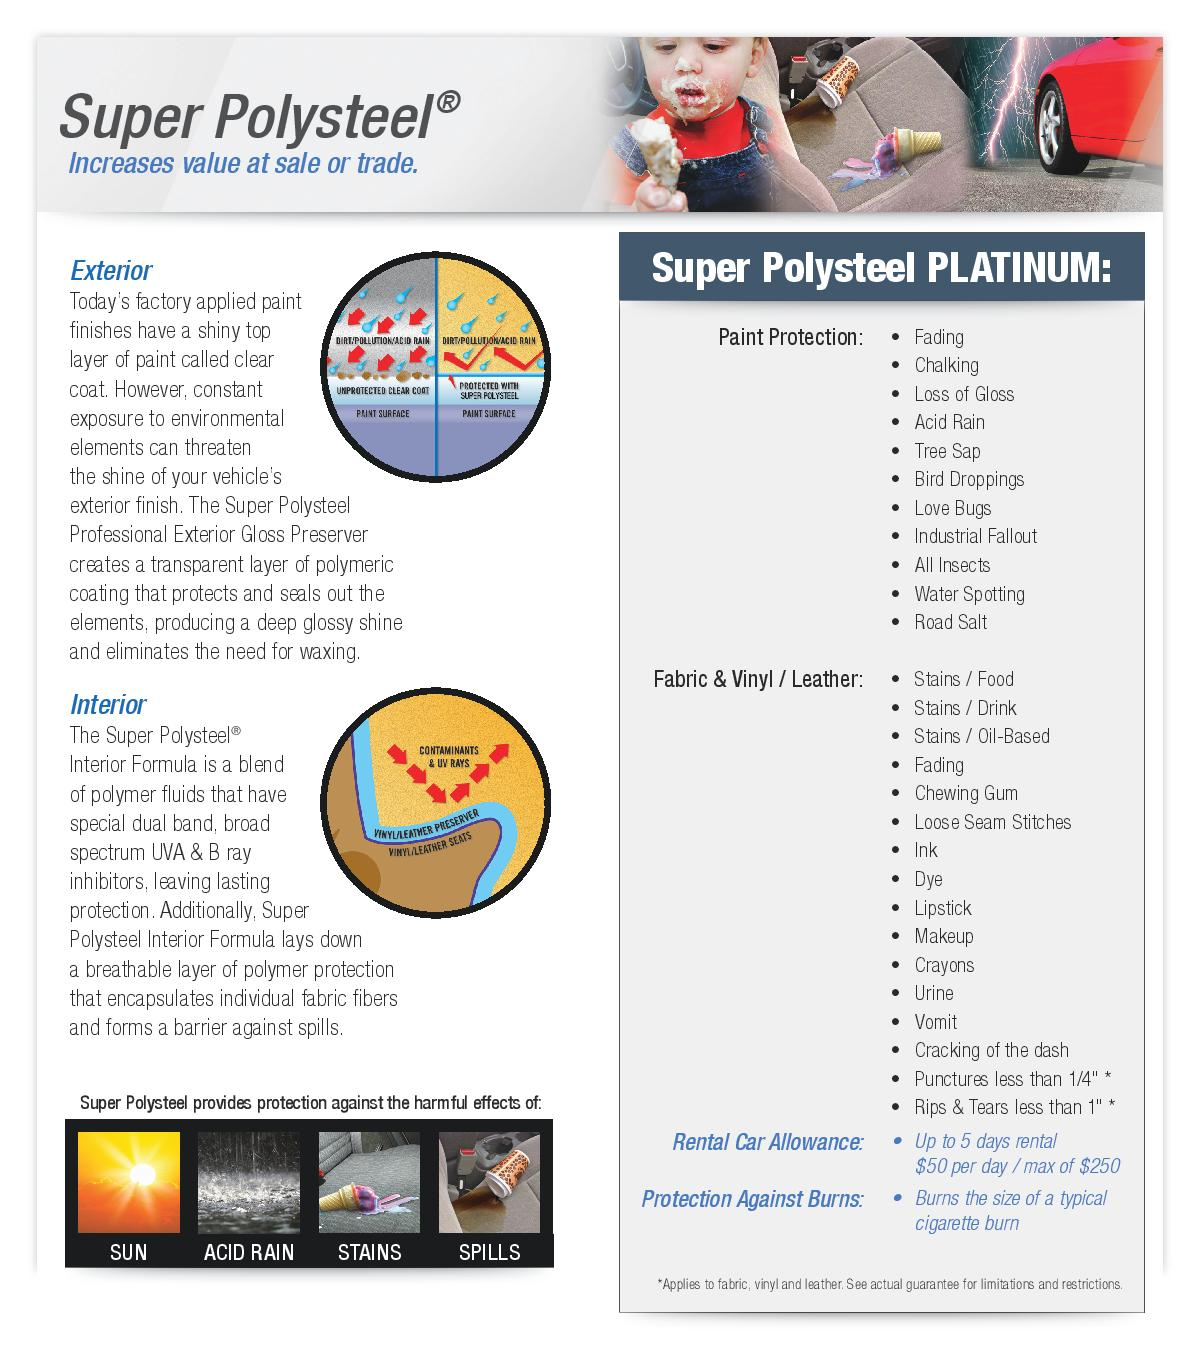 Polysteel Protection